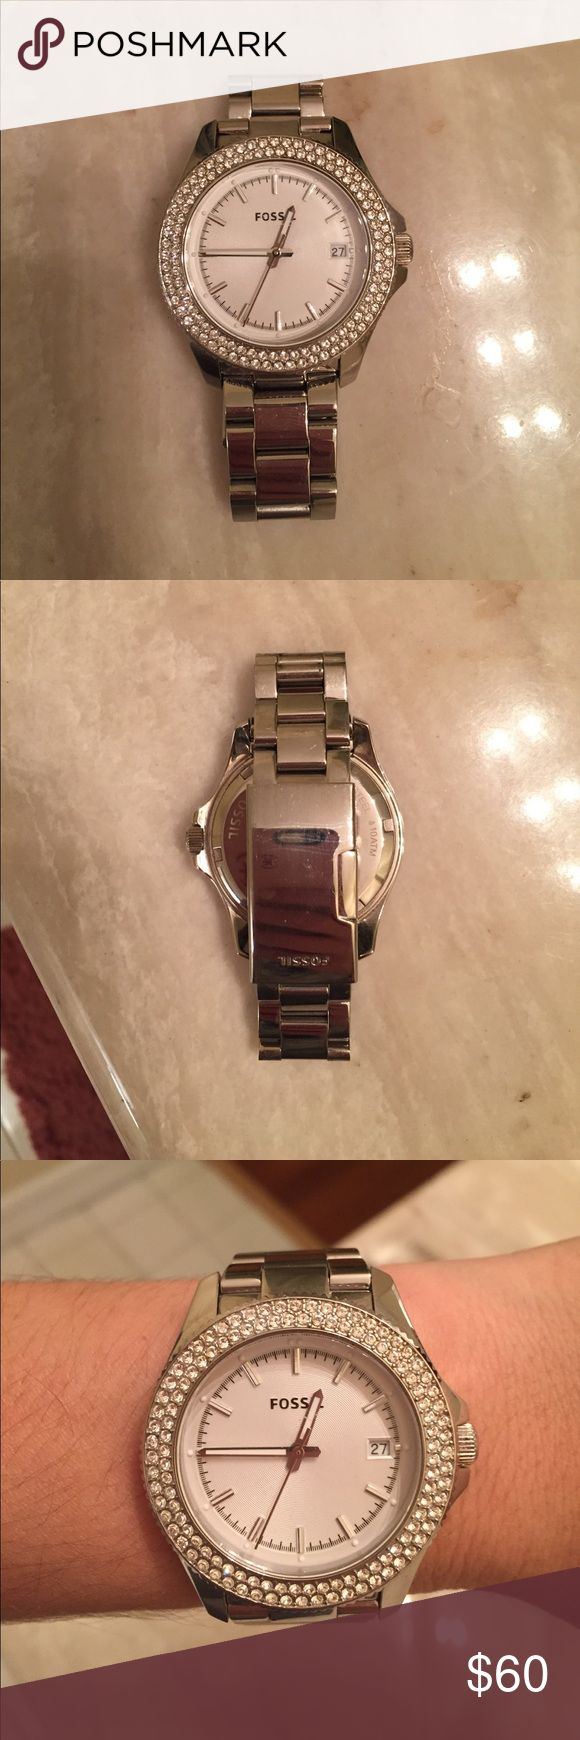 Fossil Stainless Steel Watch Fossil women's watch. Used with small scratches on link but nothing on face of watch. Needs battery replacement and cleaning. Includes extra links and price tag from Macy's. Ask me any questions :) Fossil Accessories Watches